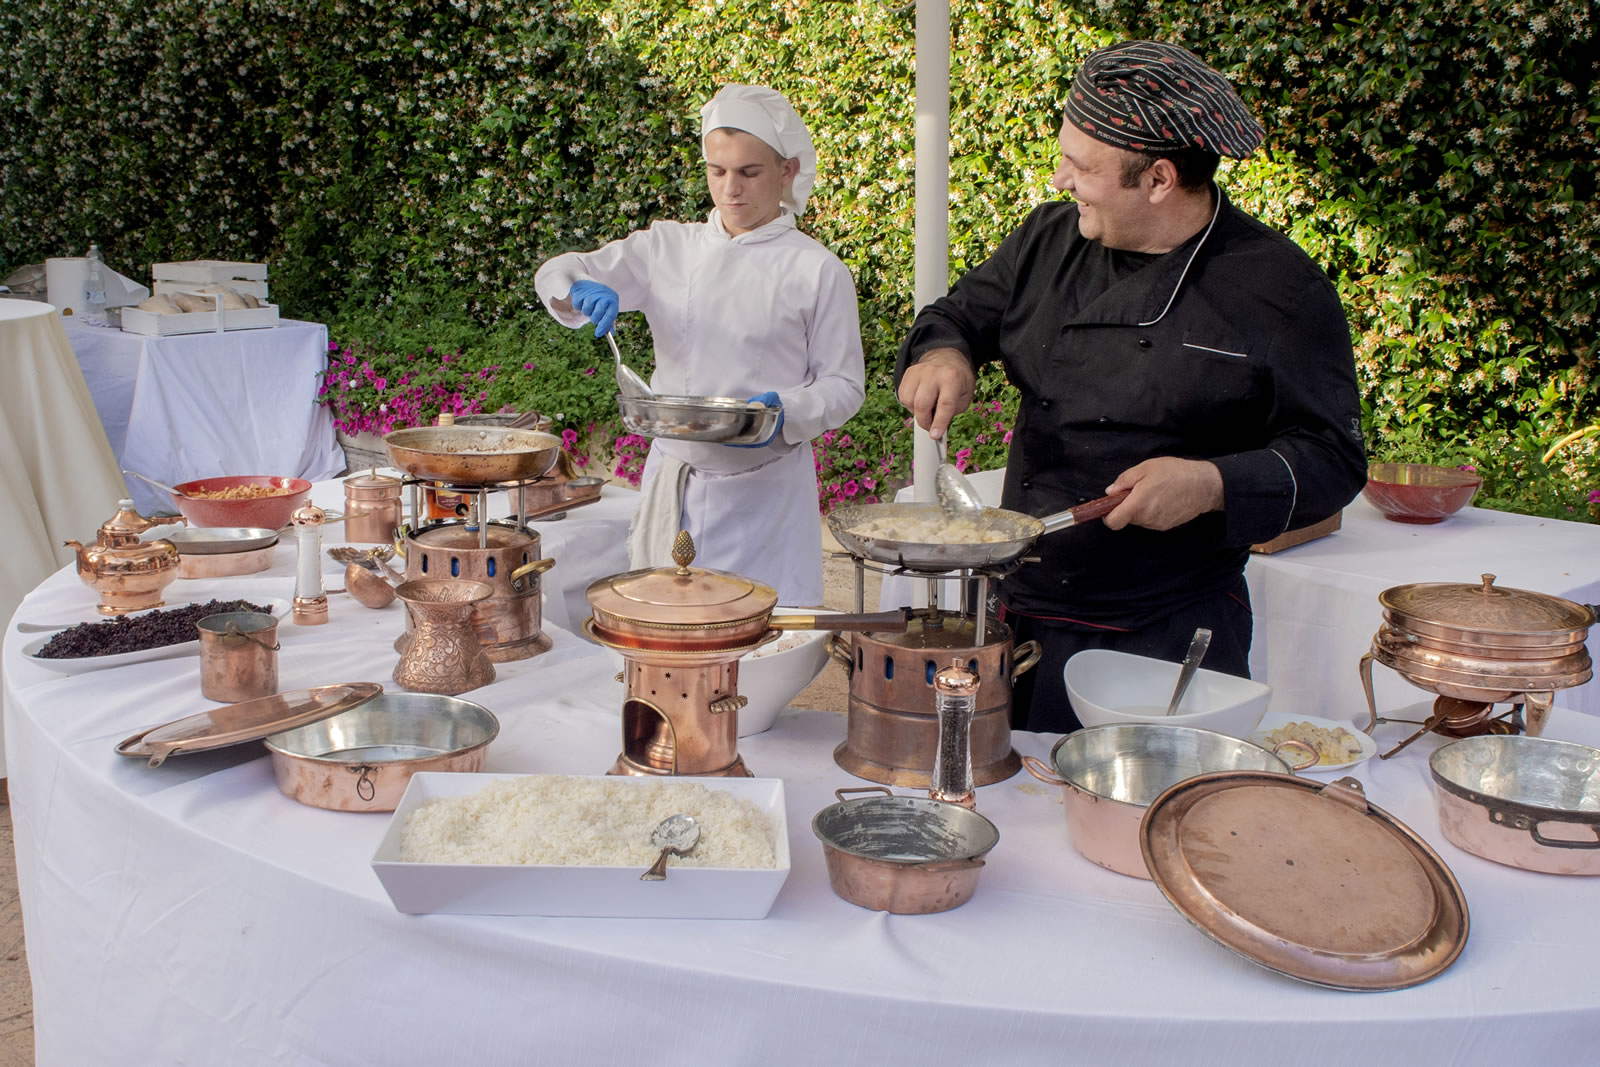 Chef - show cooking